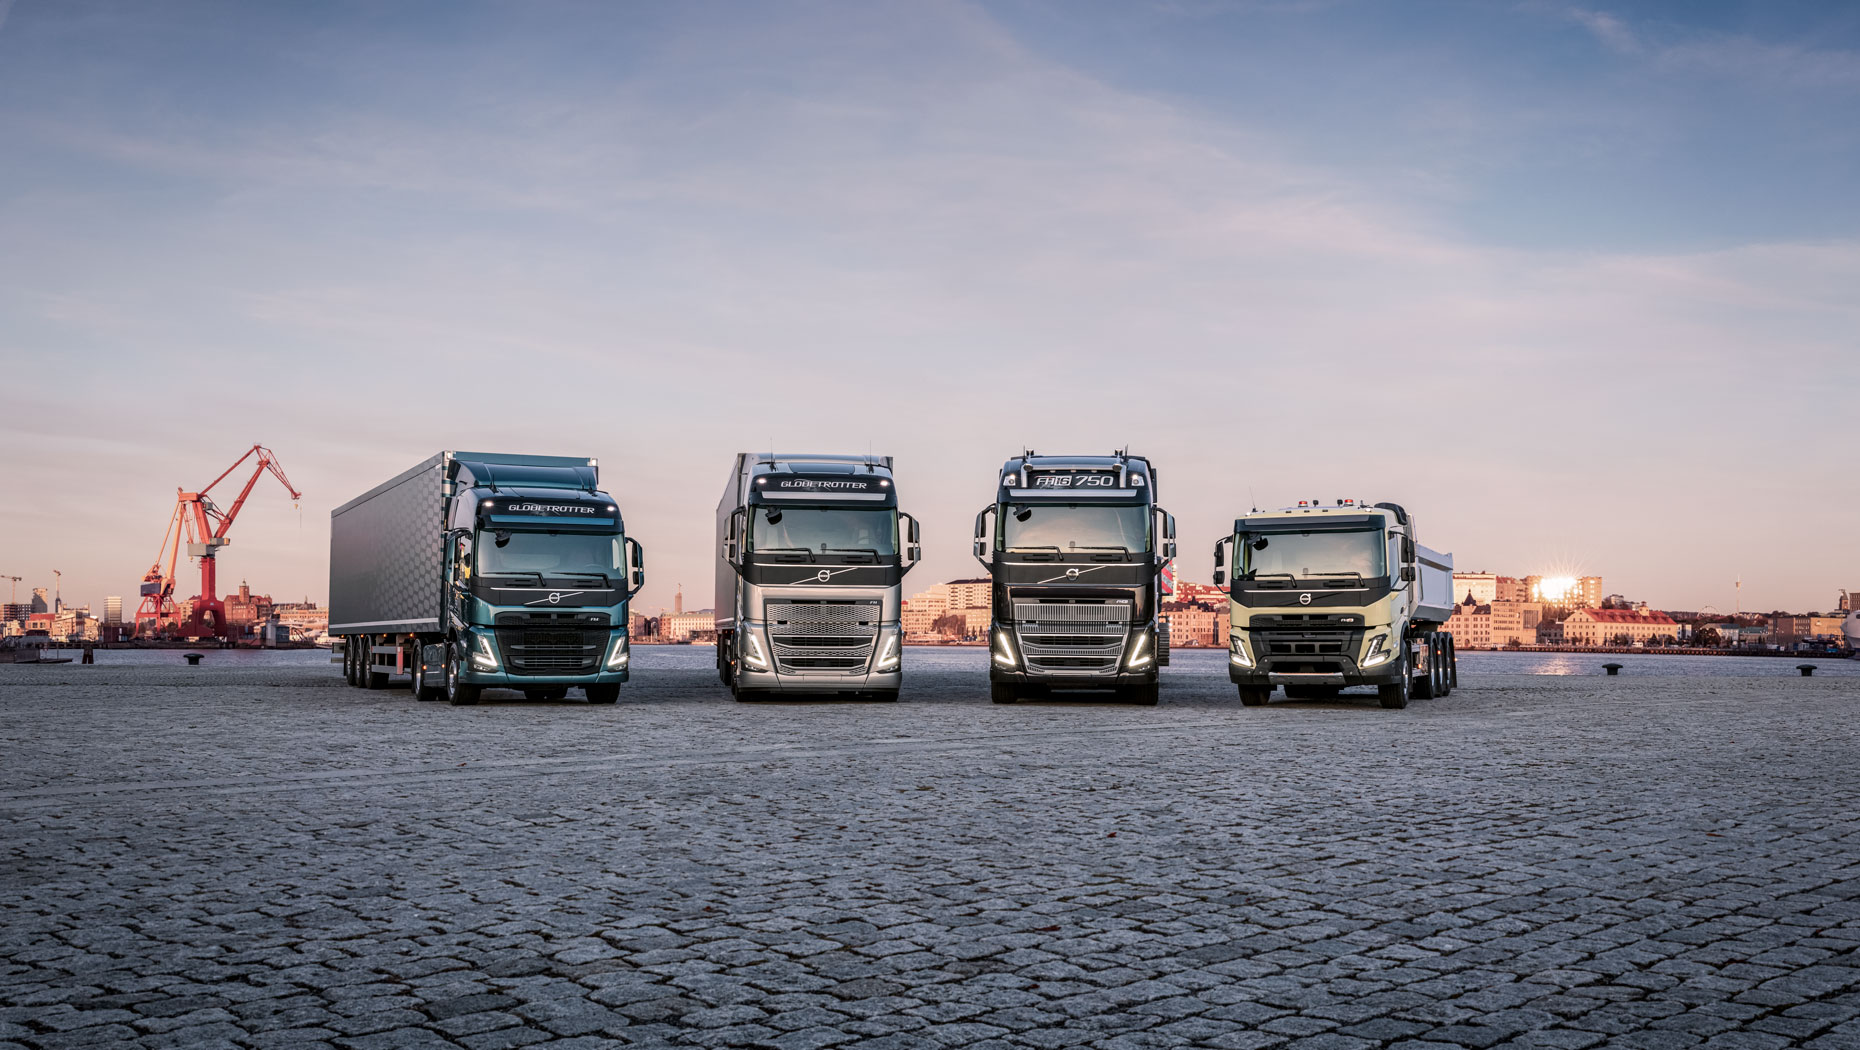 R2A8182 The new Volvo Trucks heavy duty range